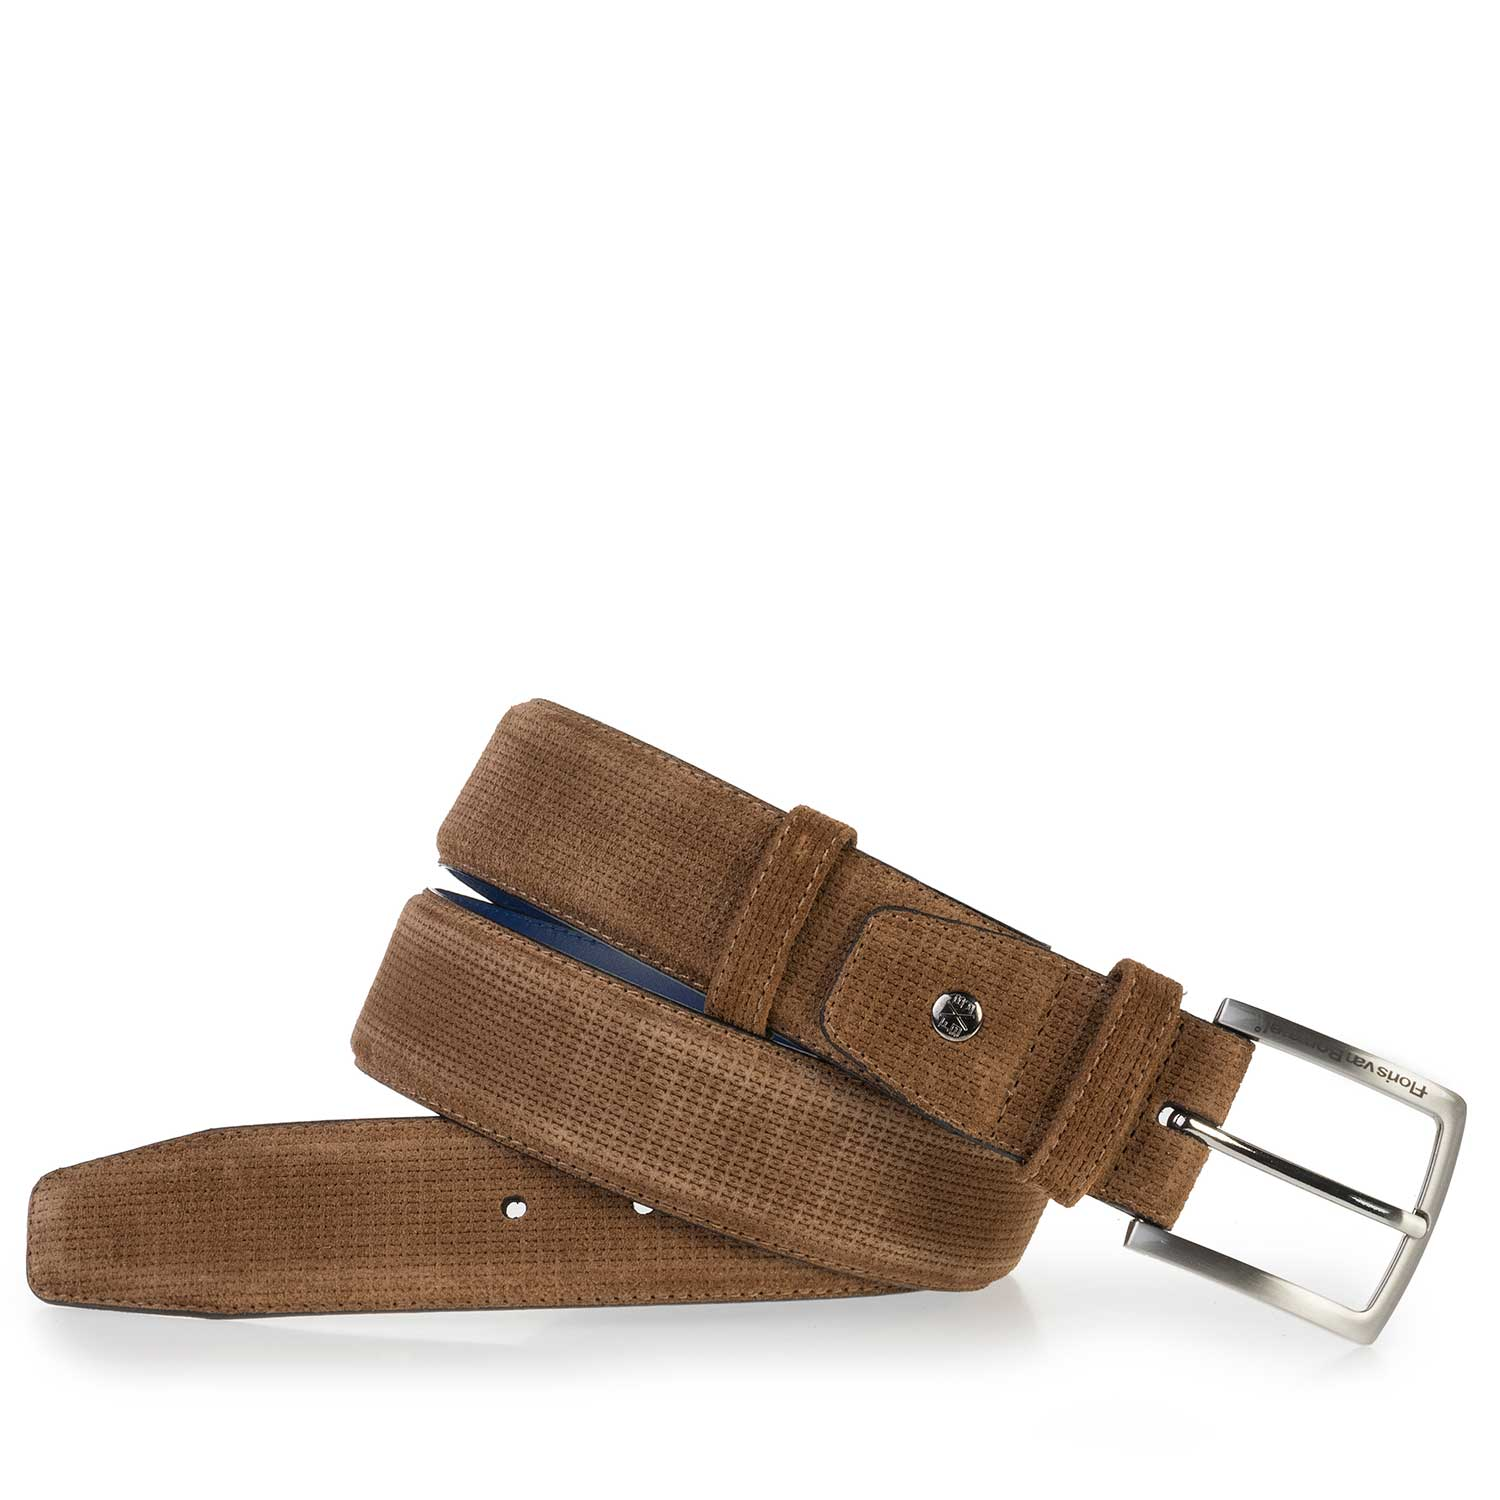 75181/06 - Light brown suede leather belt with pattern